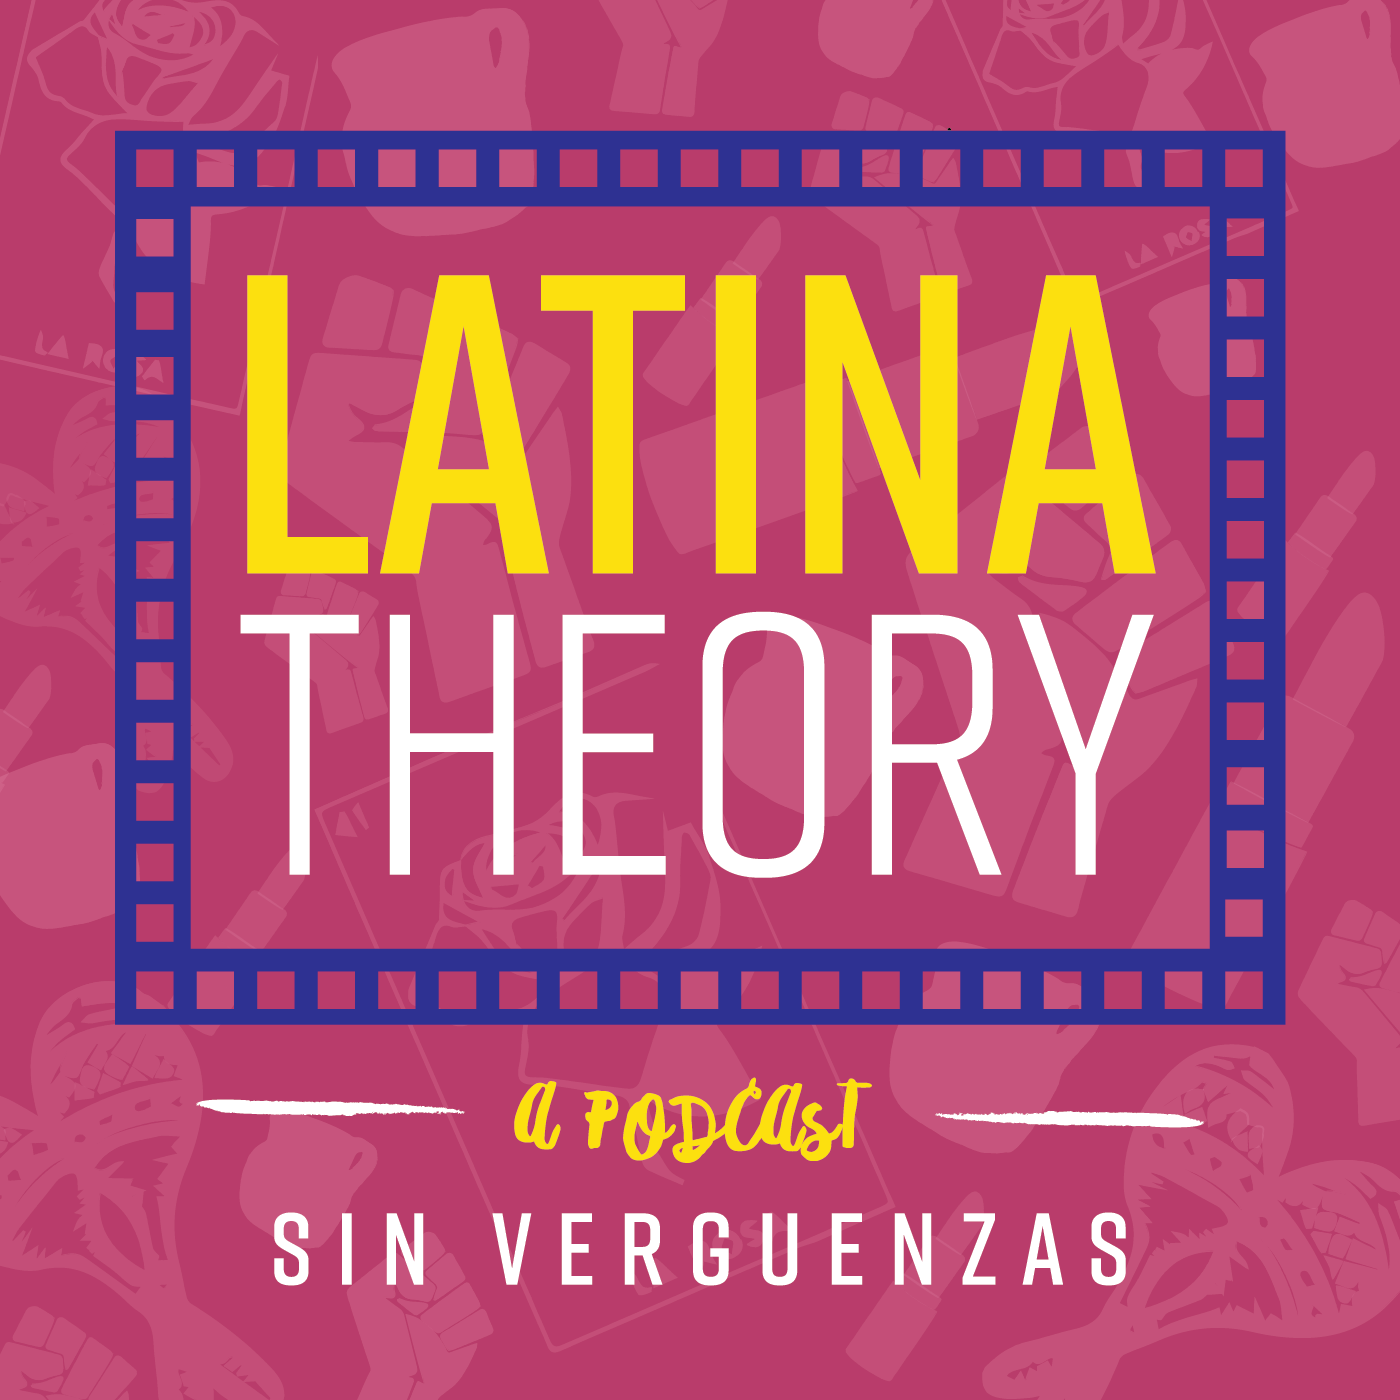 25: Latina Theory Episode 25